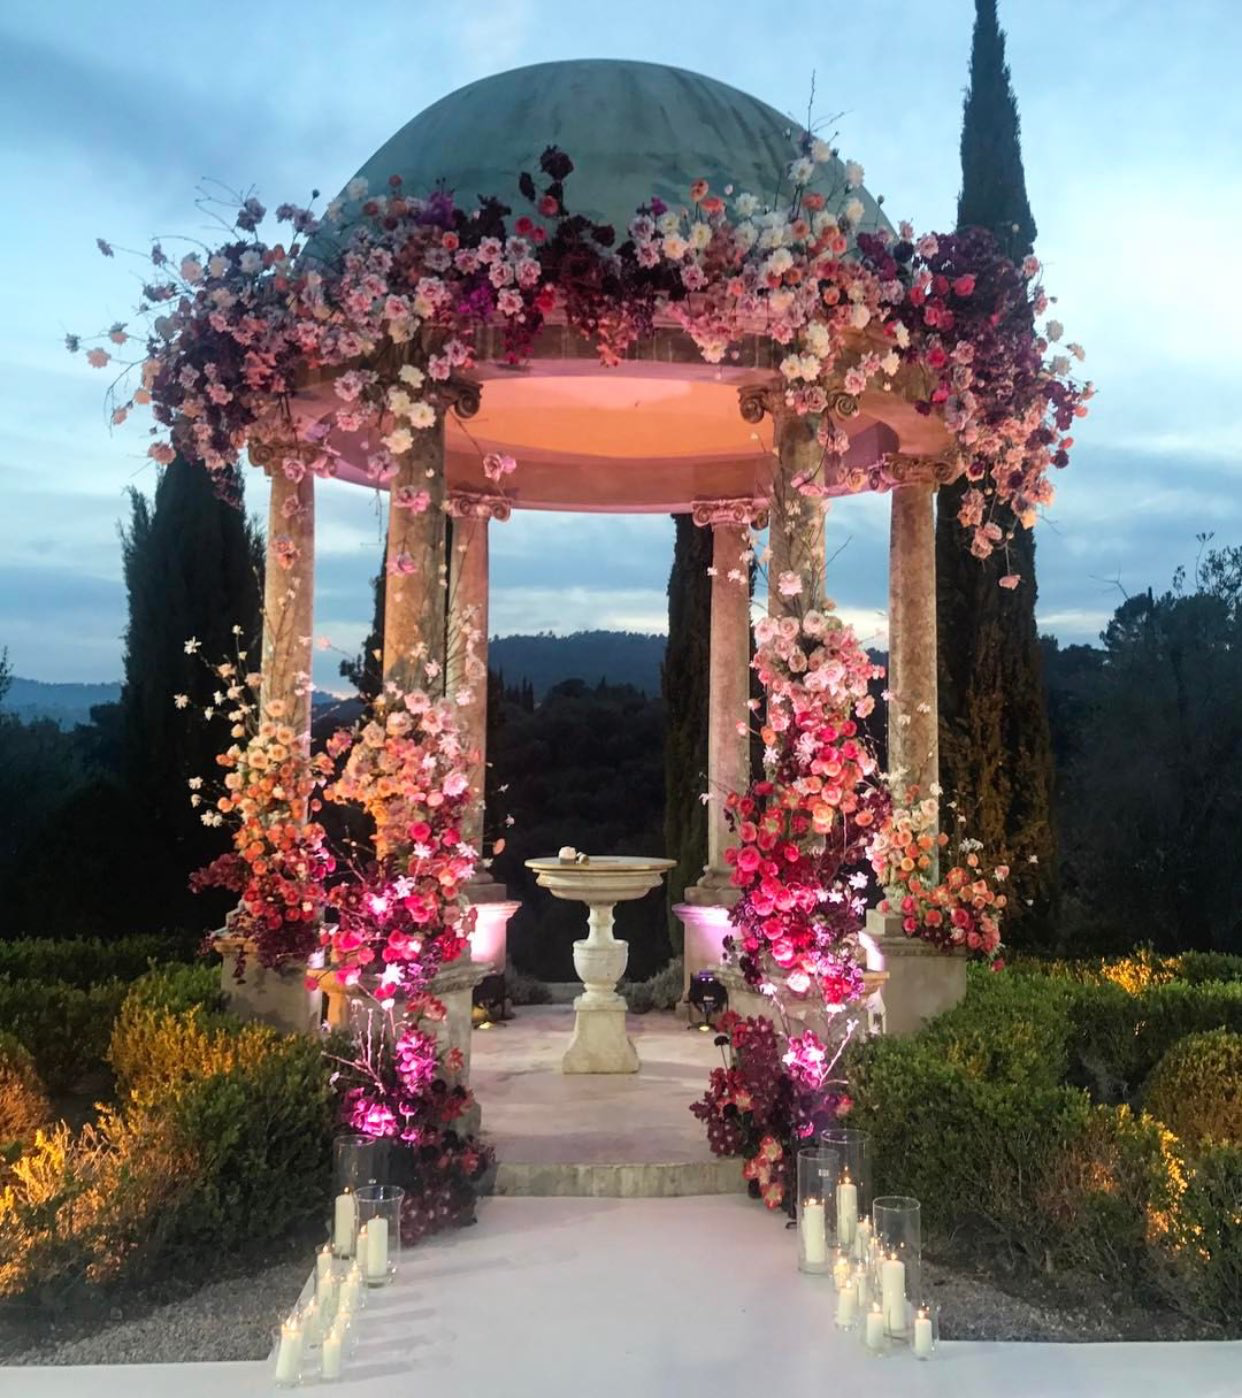 Flower Covered Pagoda Wedding Venue. Outdoor Wedding